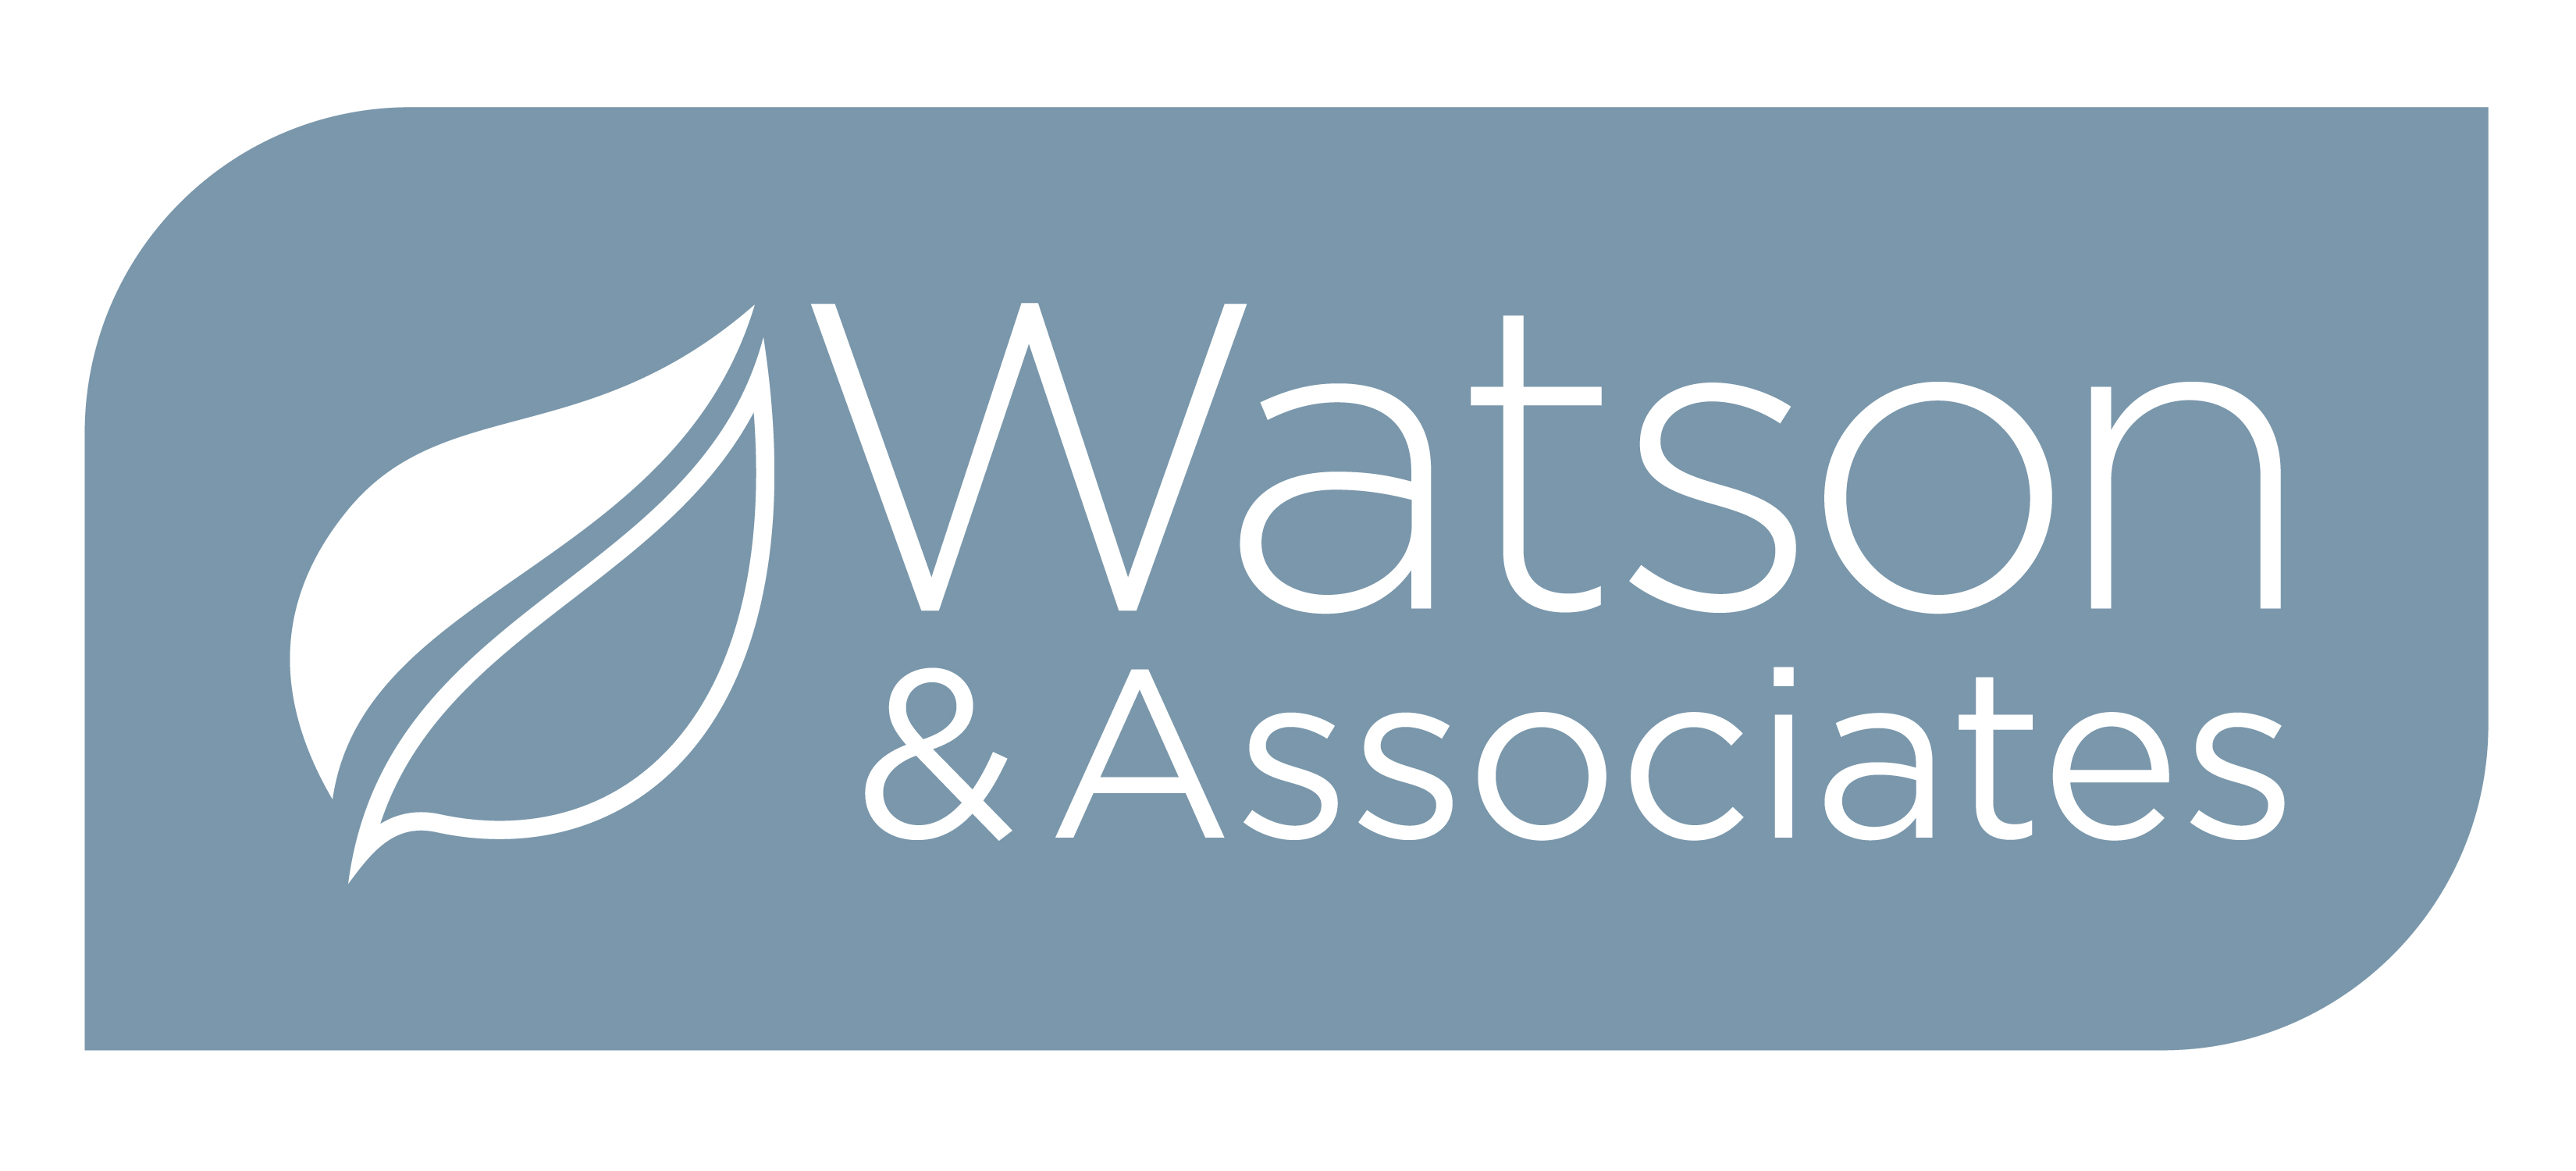 Watson & associates Economists Ltd